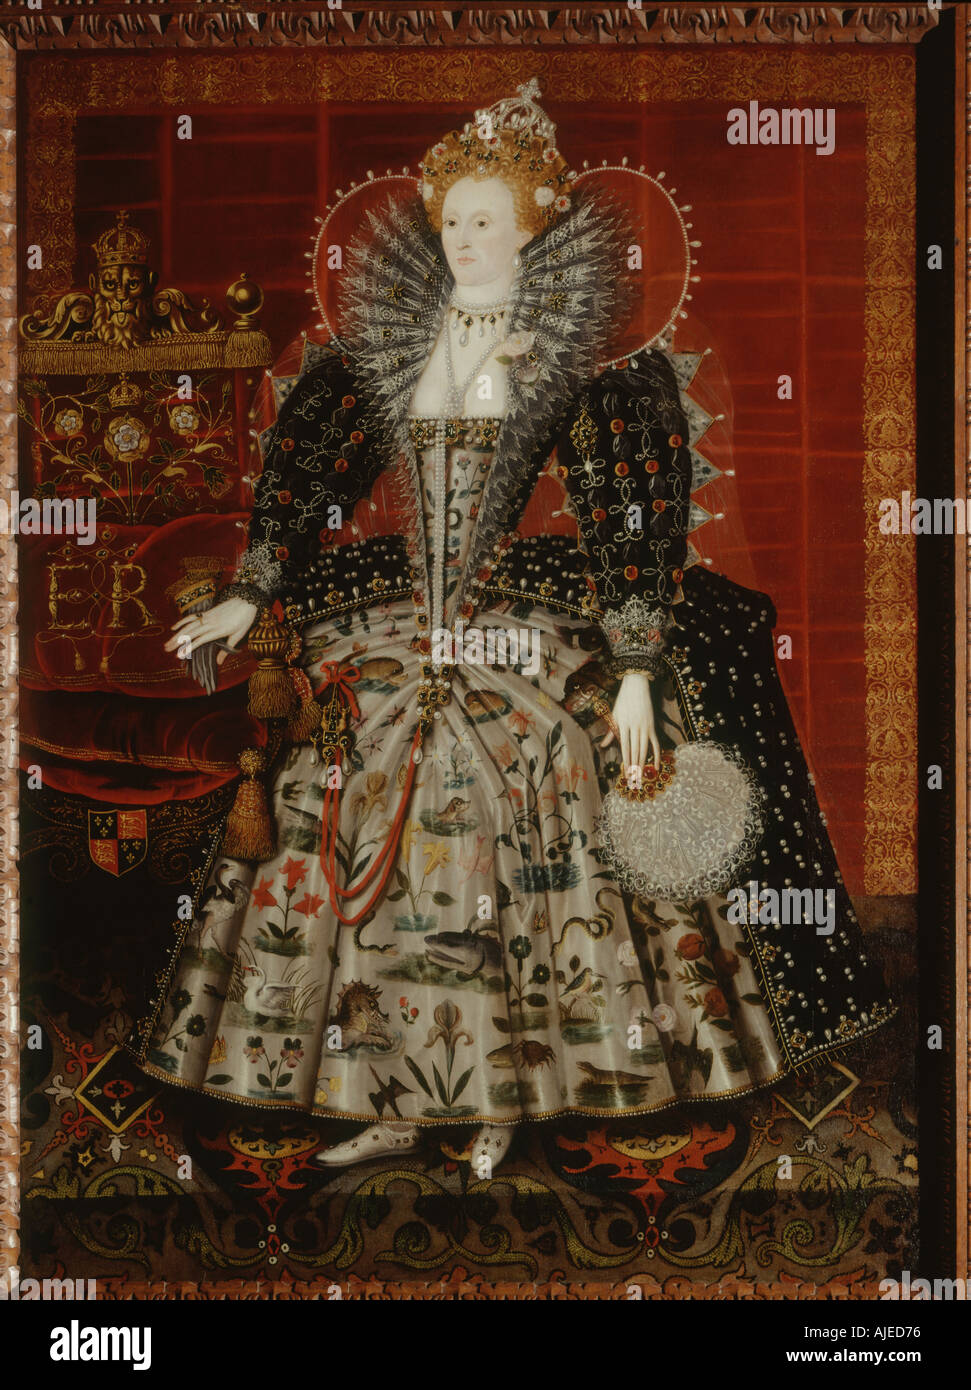 QUEEN ELIZABETH THE FIRST attributed to the C15th English School at Hardwick Hall Derbyshire - Stock Image